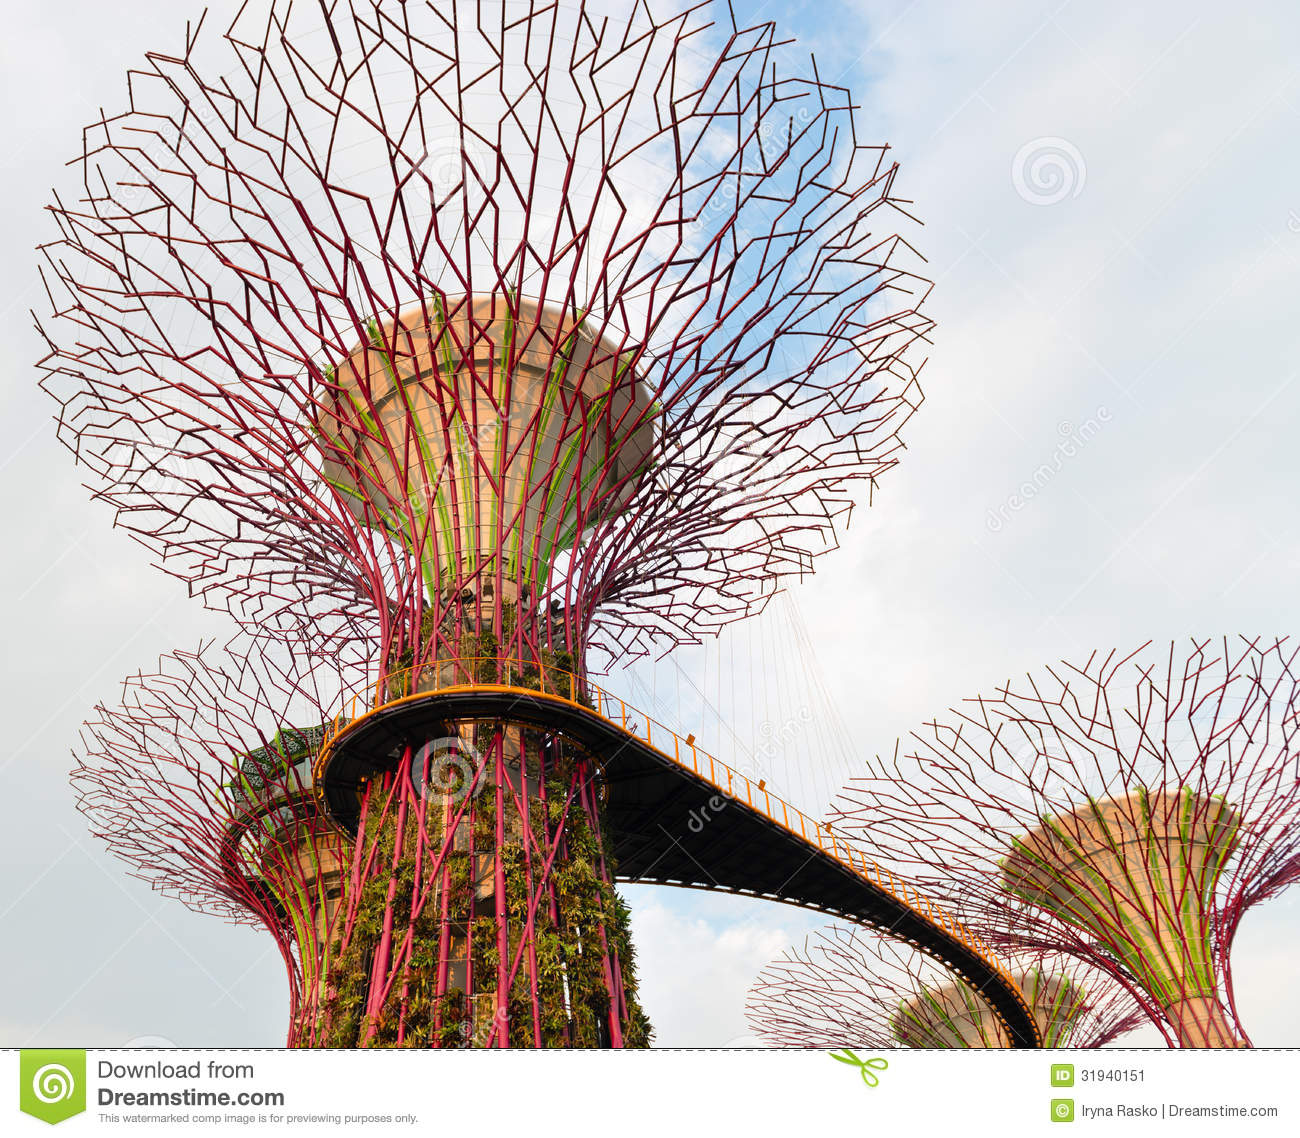 Walking Bridge On Super Trees In Gardens By The Bay Singapore.